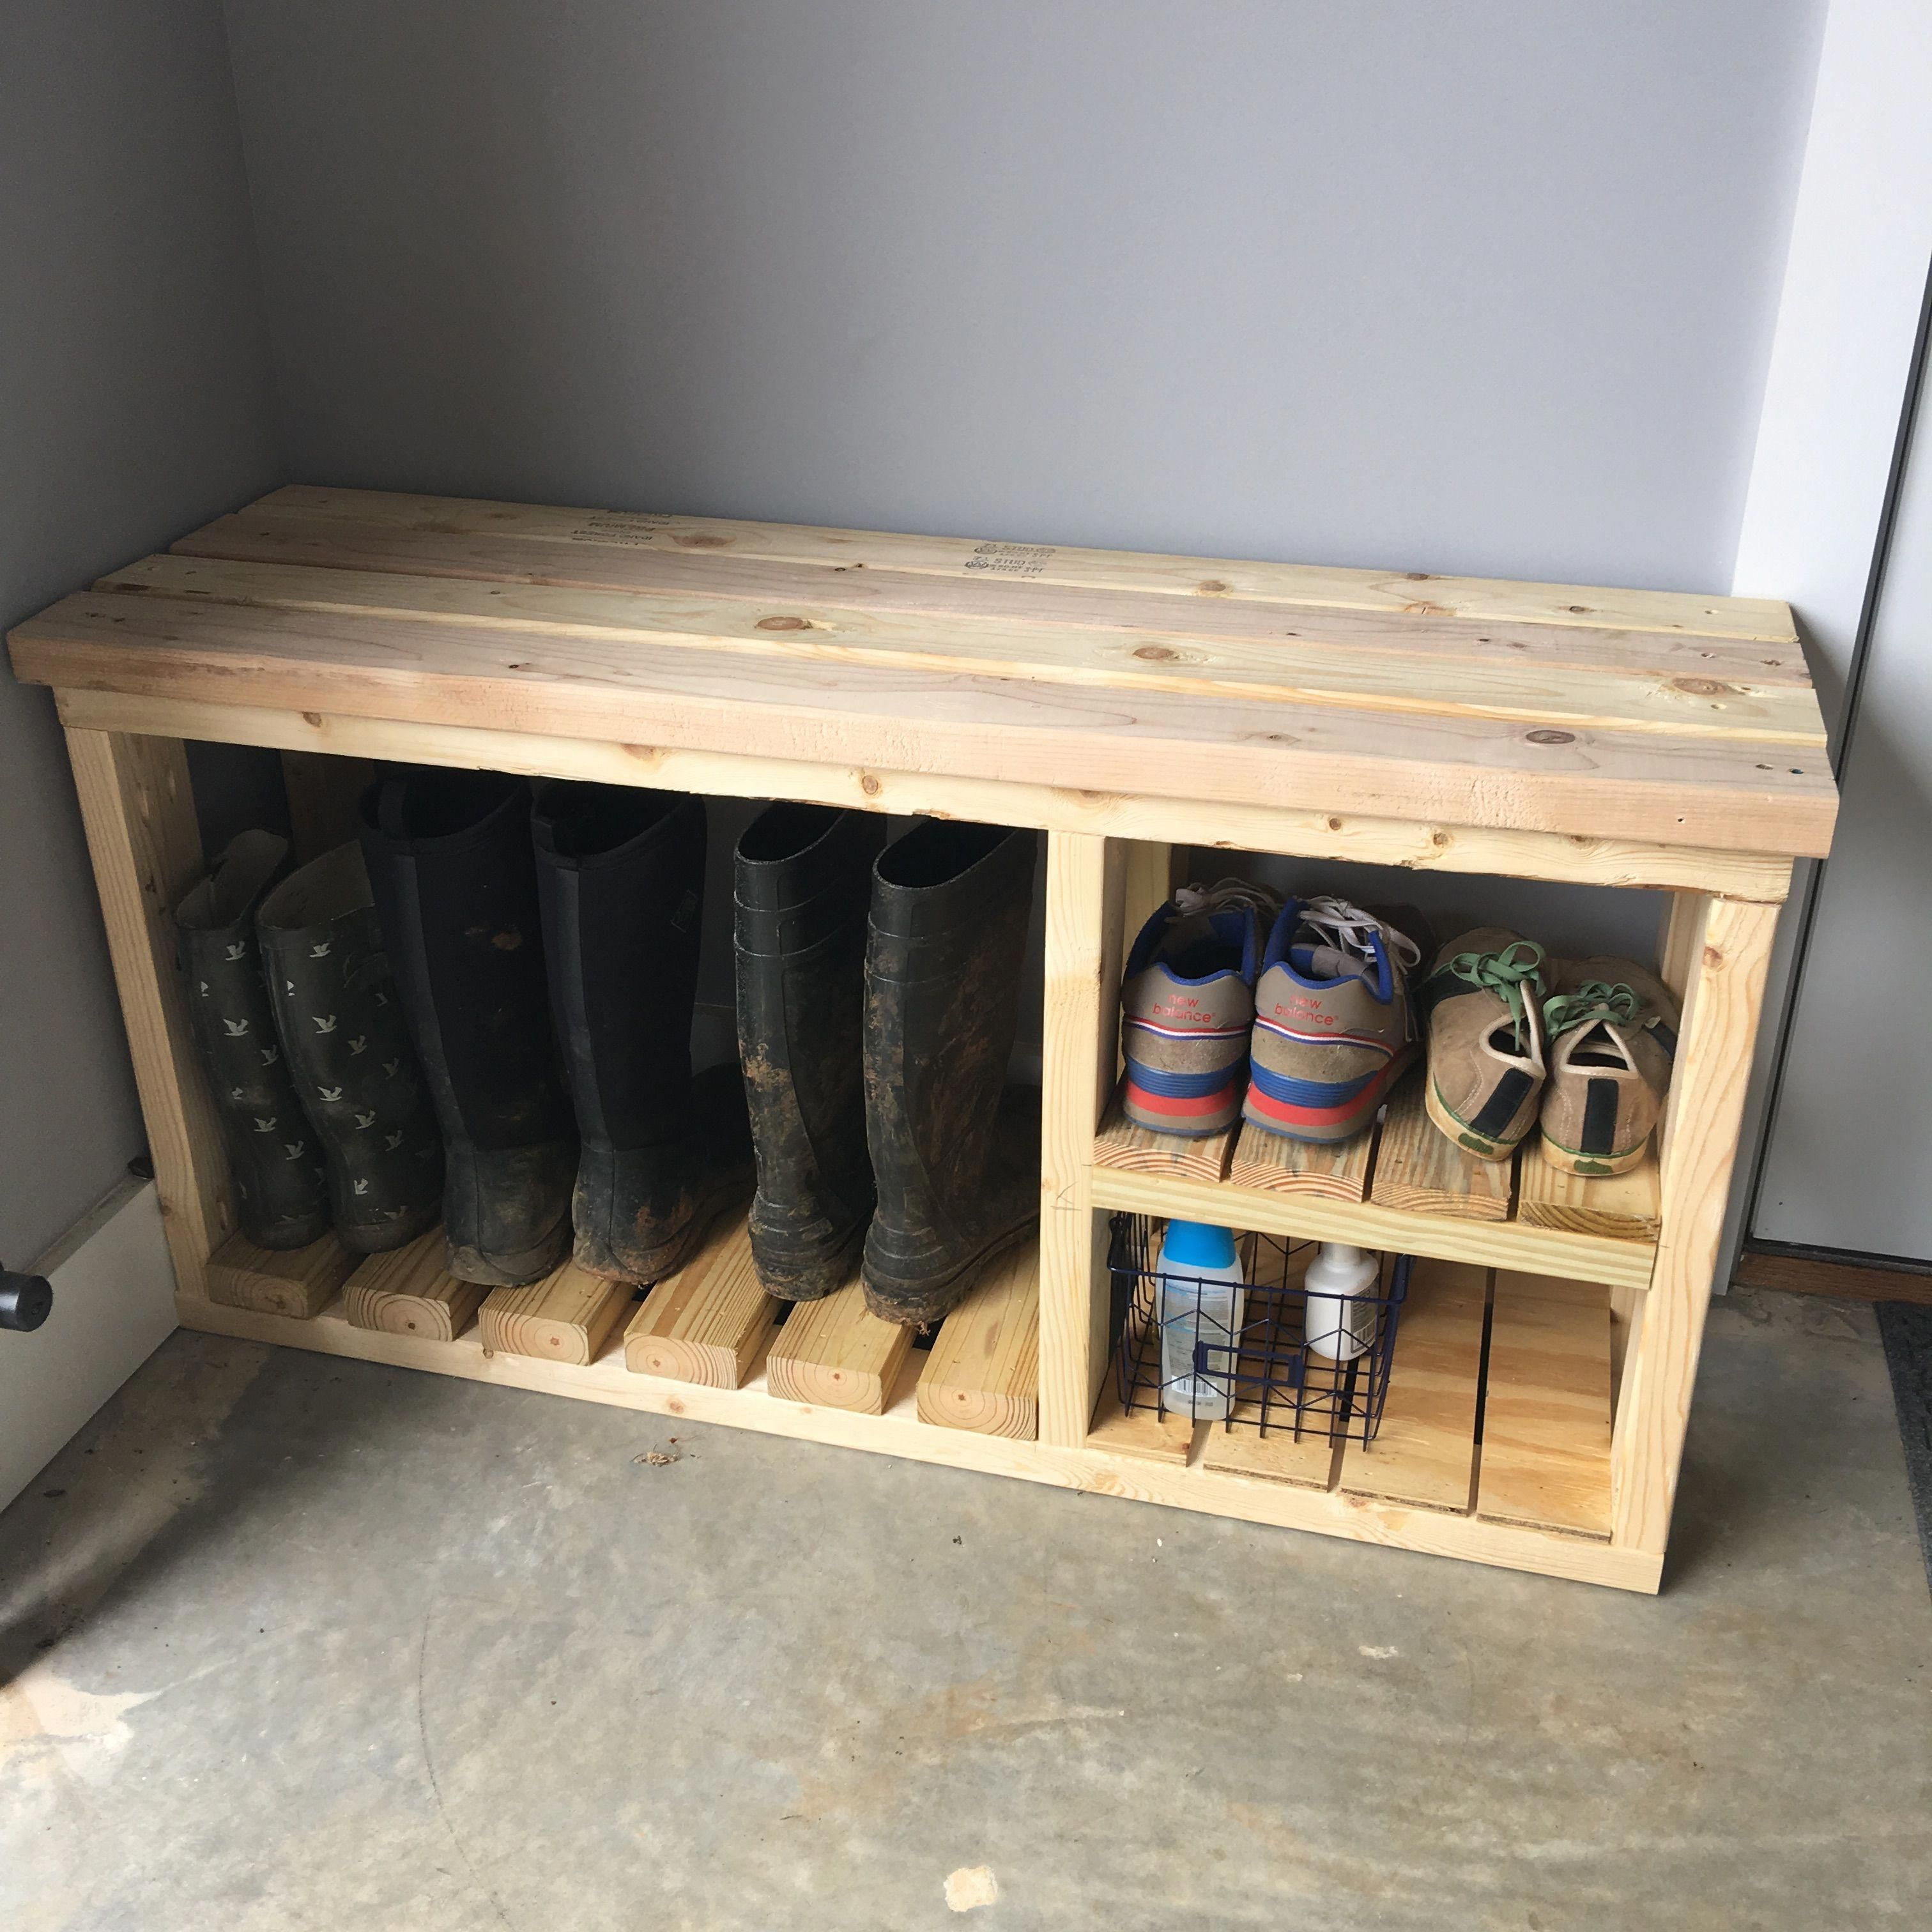 Wooden Shoe Rack With Table Top And Space For Boots Boots Rack Shoe Space Table Top Woo In 2020 Diy Schuhaufbewahrung Holzschuhregal Bank Mit Schuhaufbewahrung